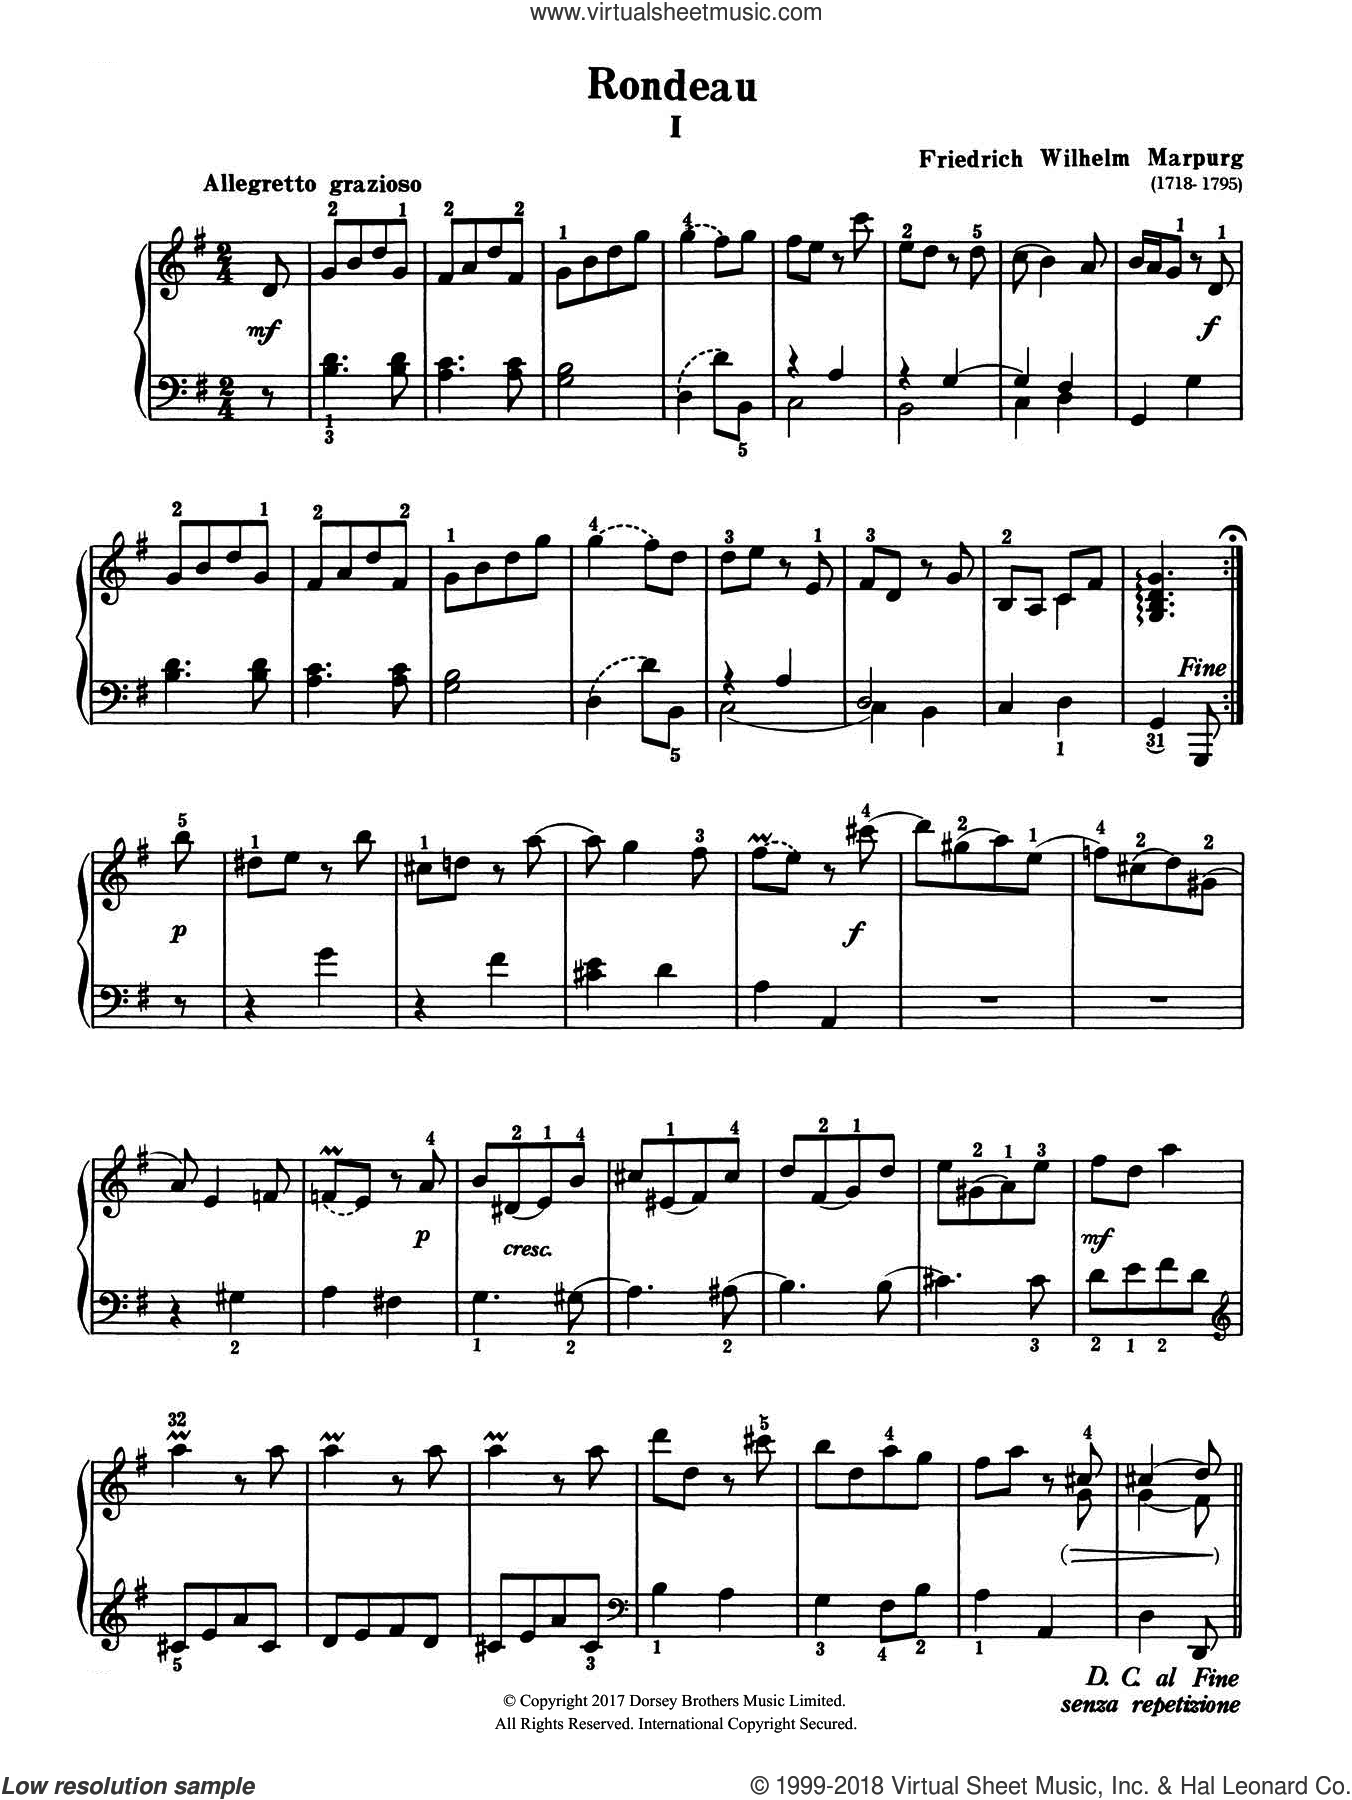 Rondeau sheet music for piano solo by Friedrich Wilhelm Marpurg, classical score, intermediate